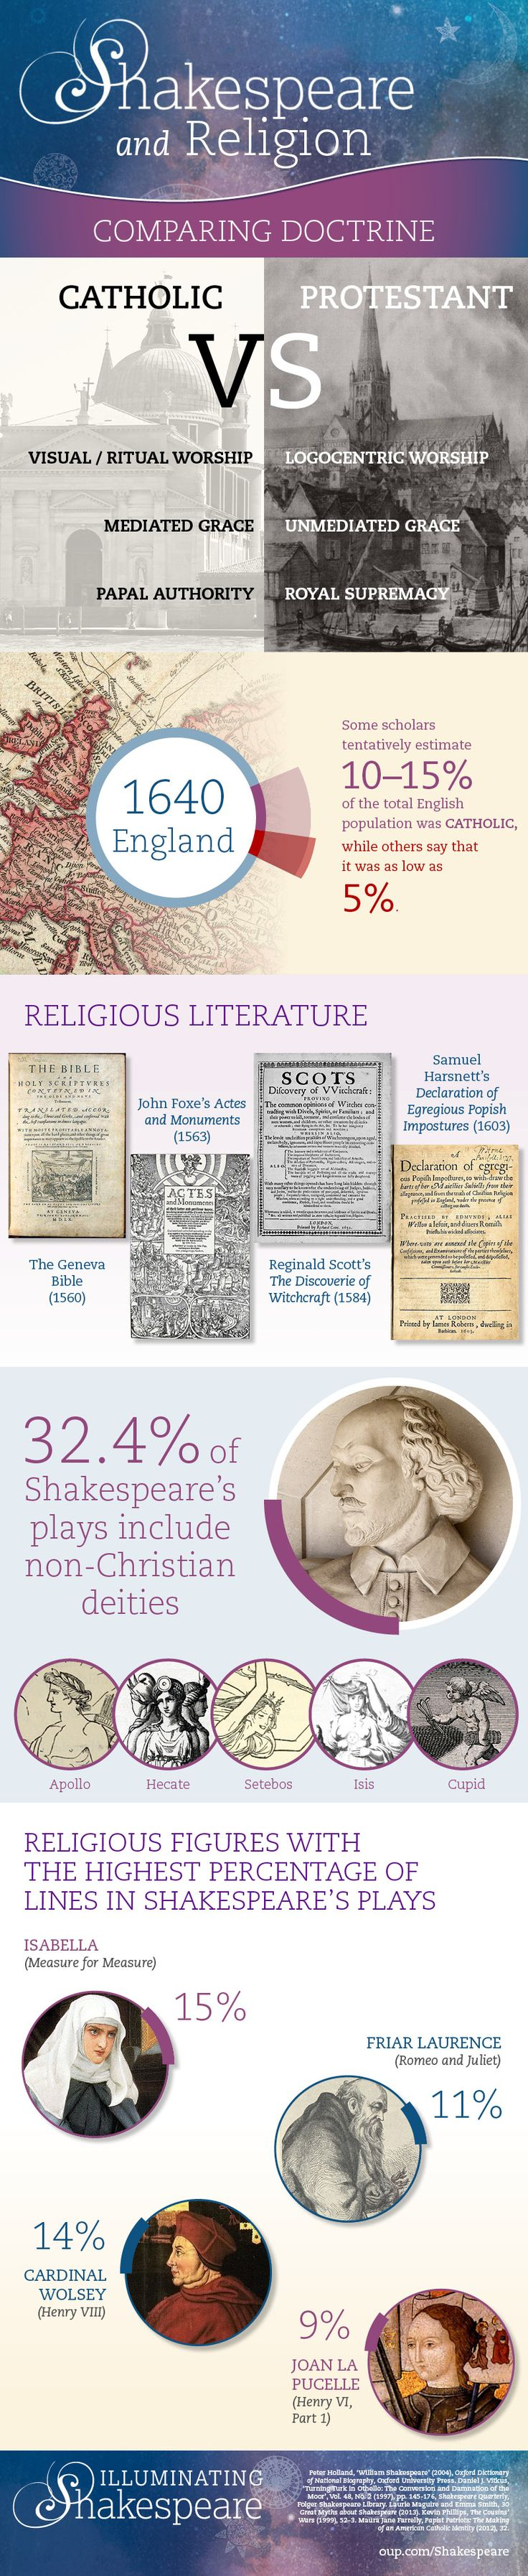 Gods and religion in Shakespeare's work [infographic] | OUPblog  || Ideas and inspiration for teaching GCSE English || www.gcse-english.com ||